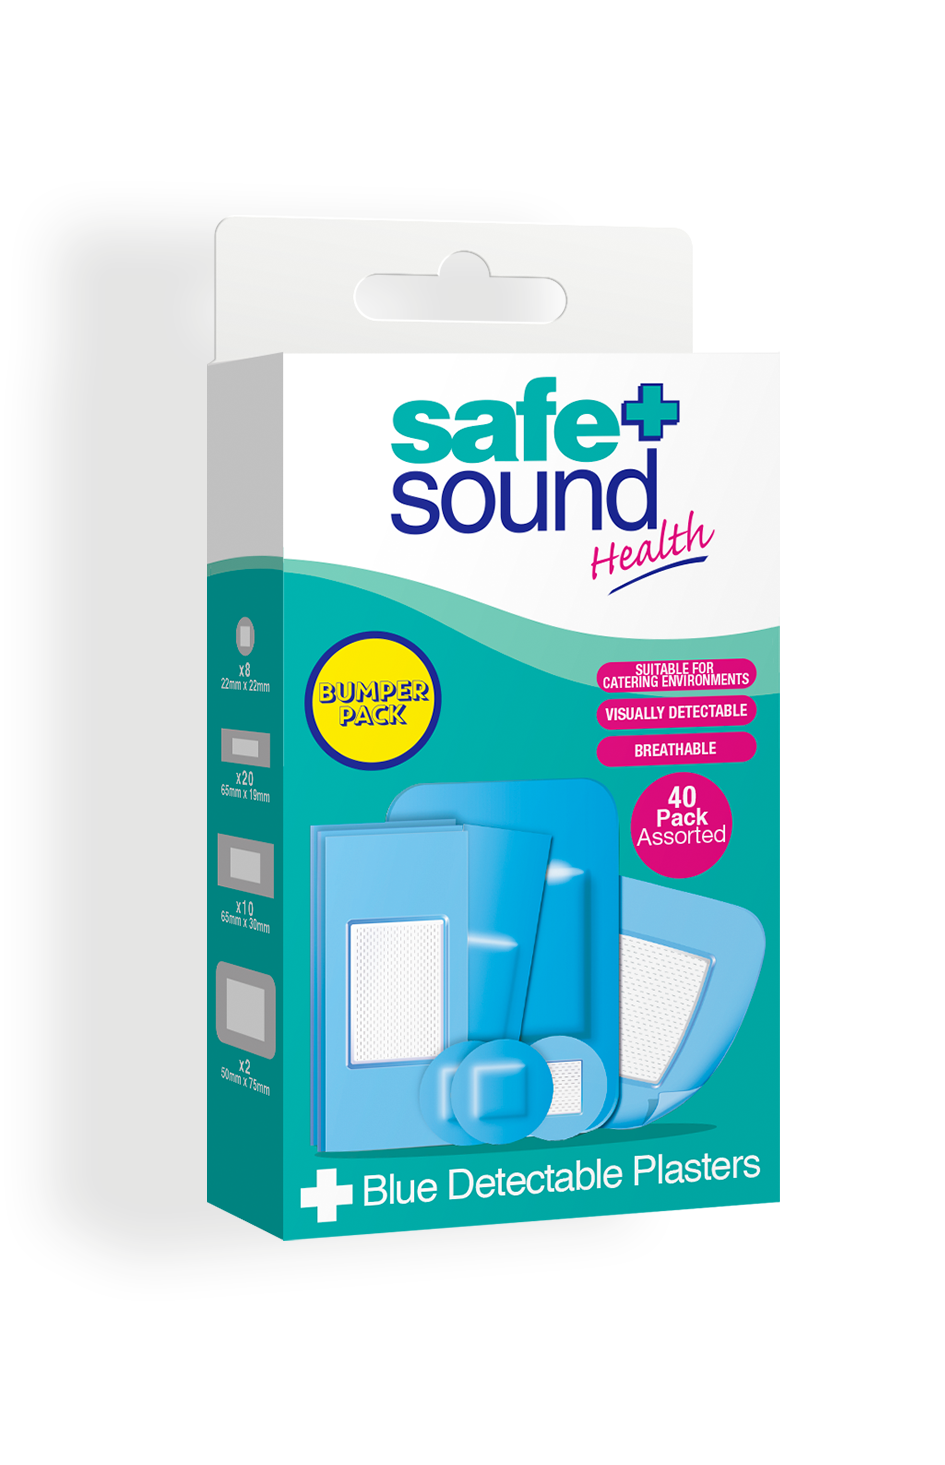 Safe and Sound Health pack of 40 Detectable Blue Catering Plasters